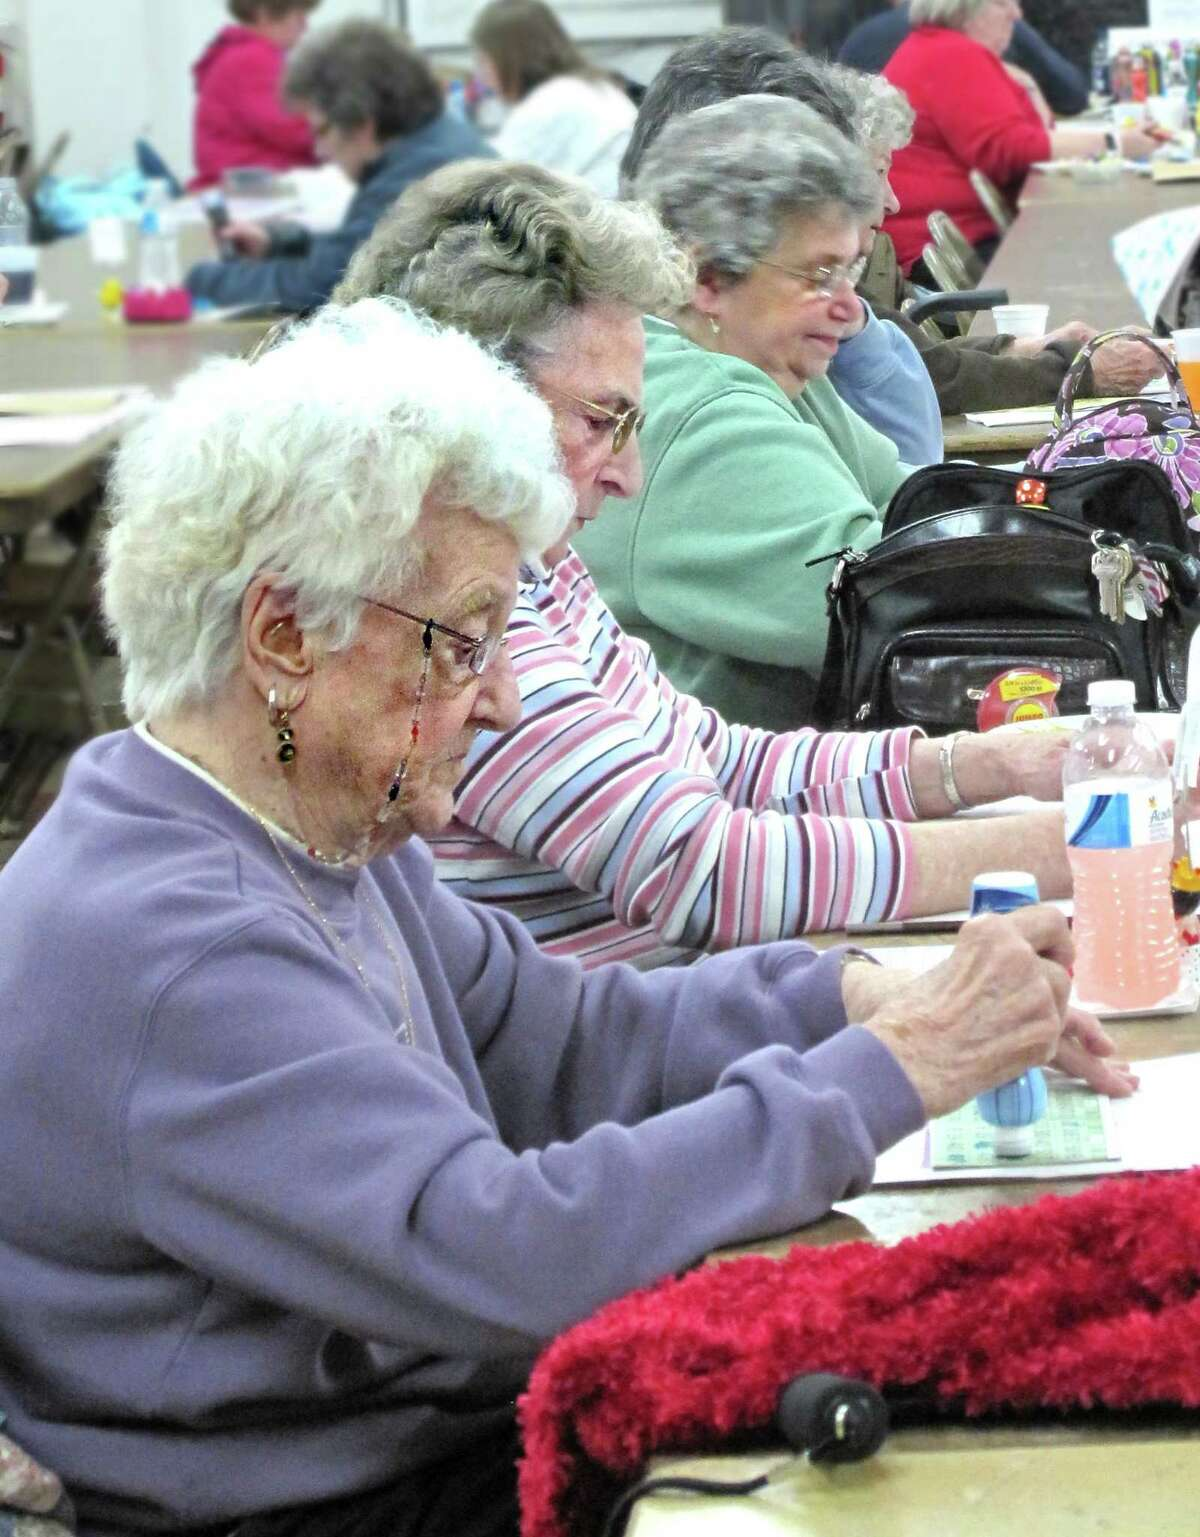 DEBBI MORELLO/Register Citizen Bingo at St. Maron's Church is serious business, even for the early Bingo crowd. Loyal and avid Bingo players concentrate as the numbers are called at St. Maron's Church on Sunday.